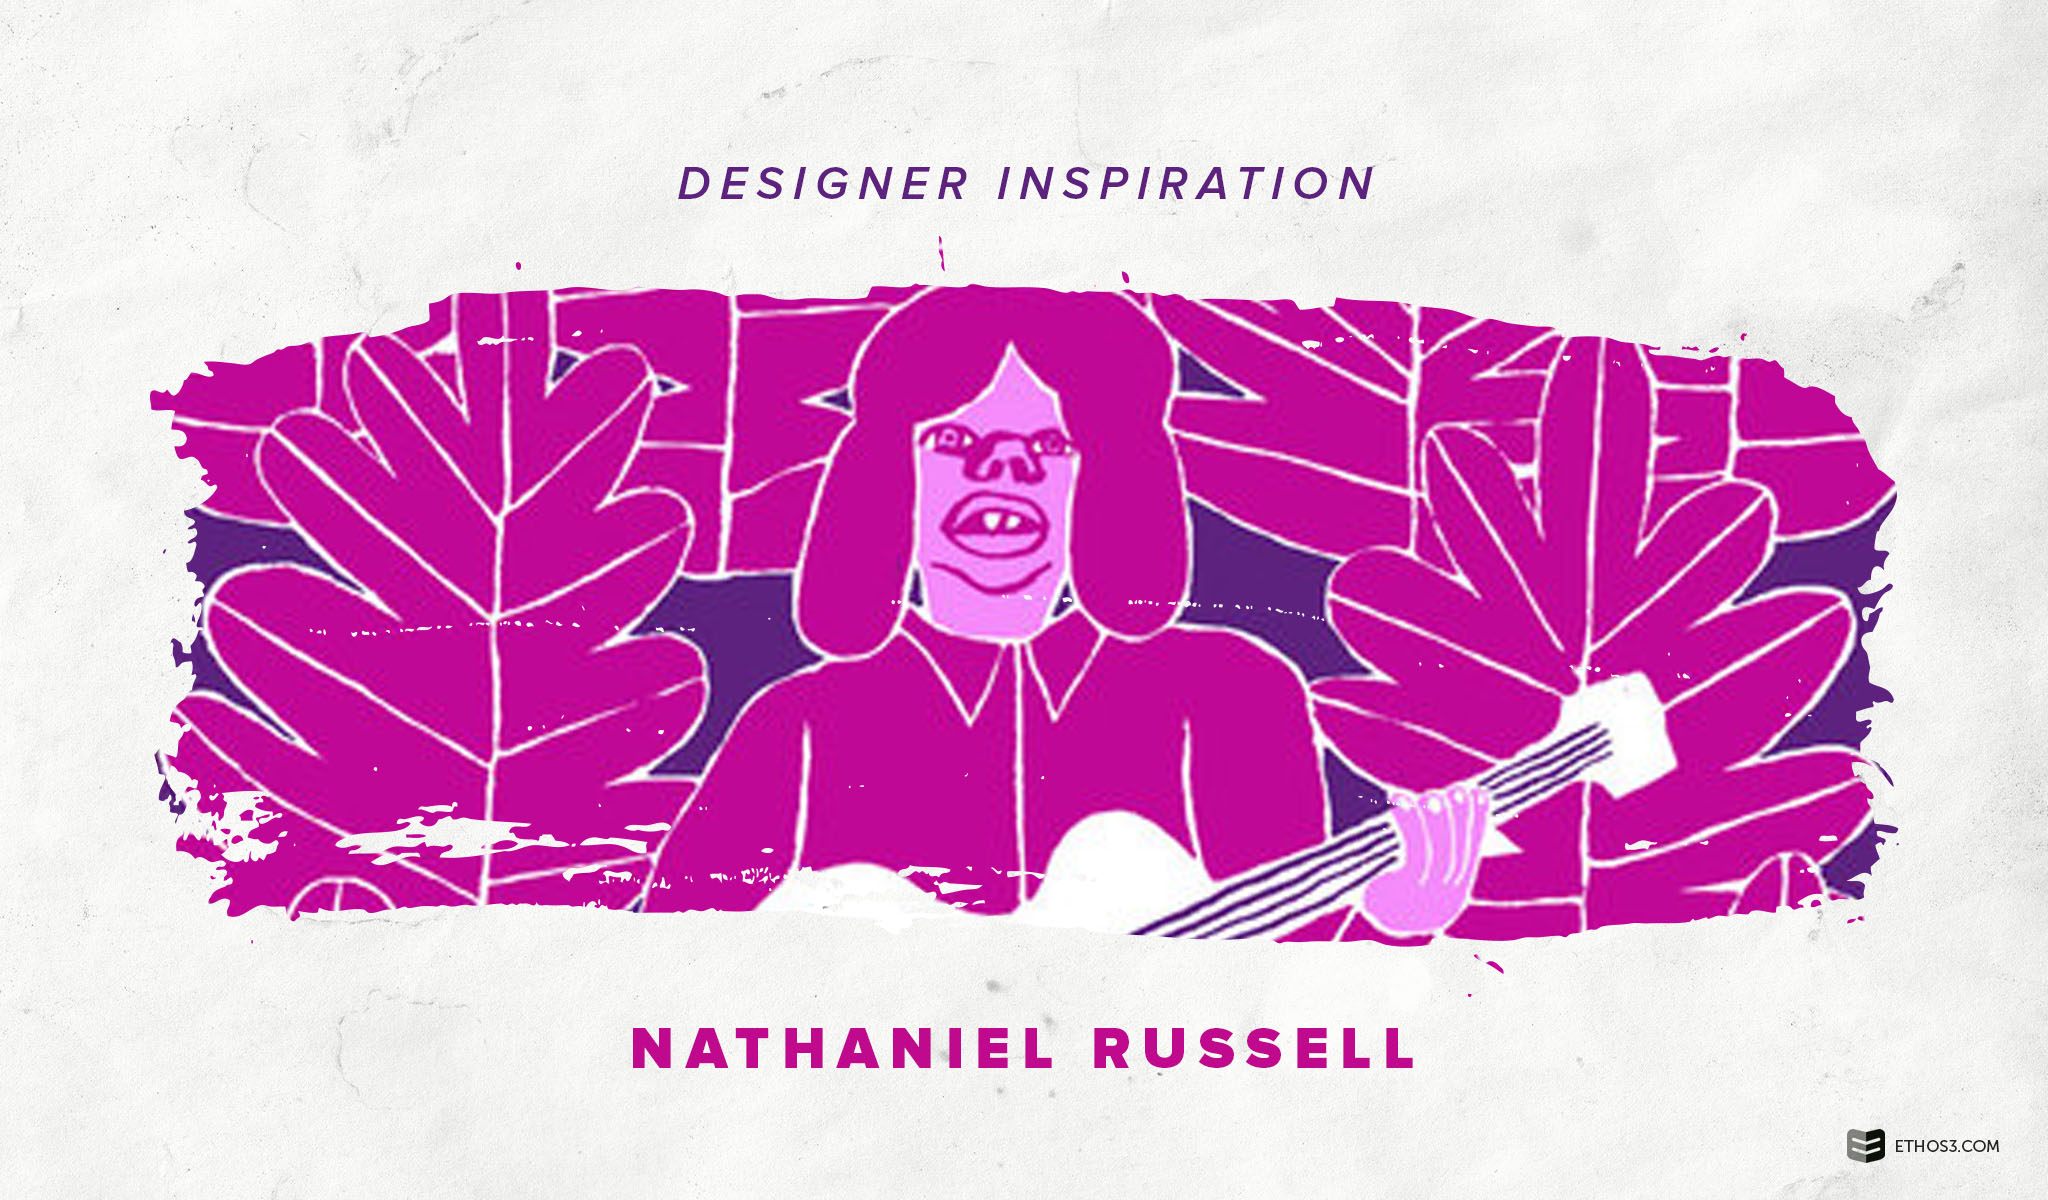 Nathaniel Russell Designs